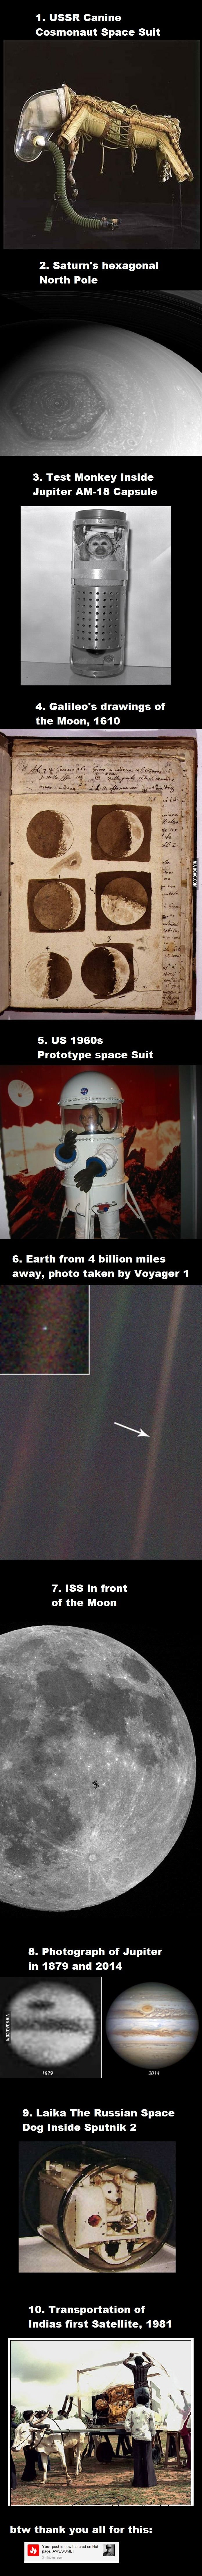 Collection of interesting pictures I found over the years, Part 24:  Astronomy and Astronautics